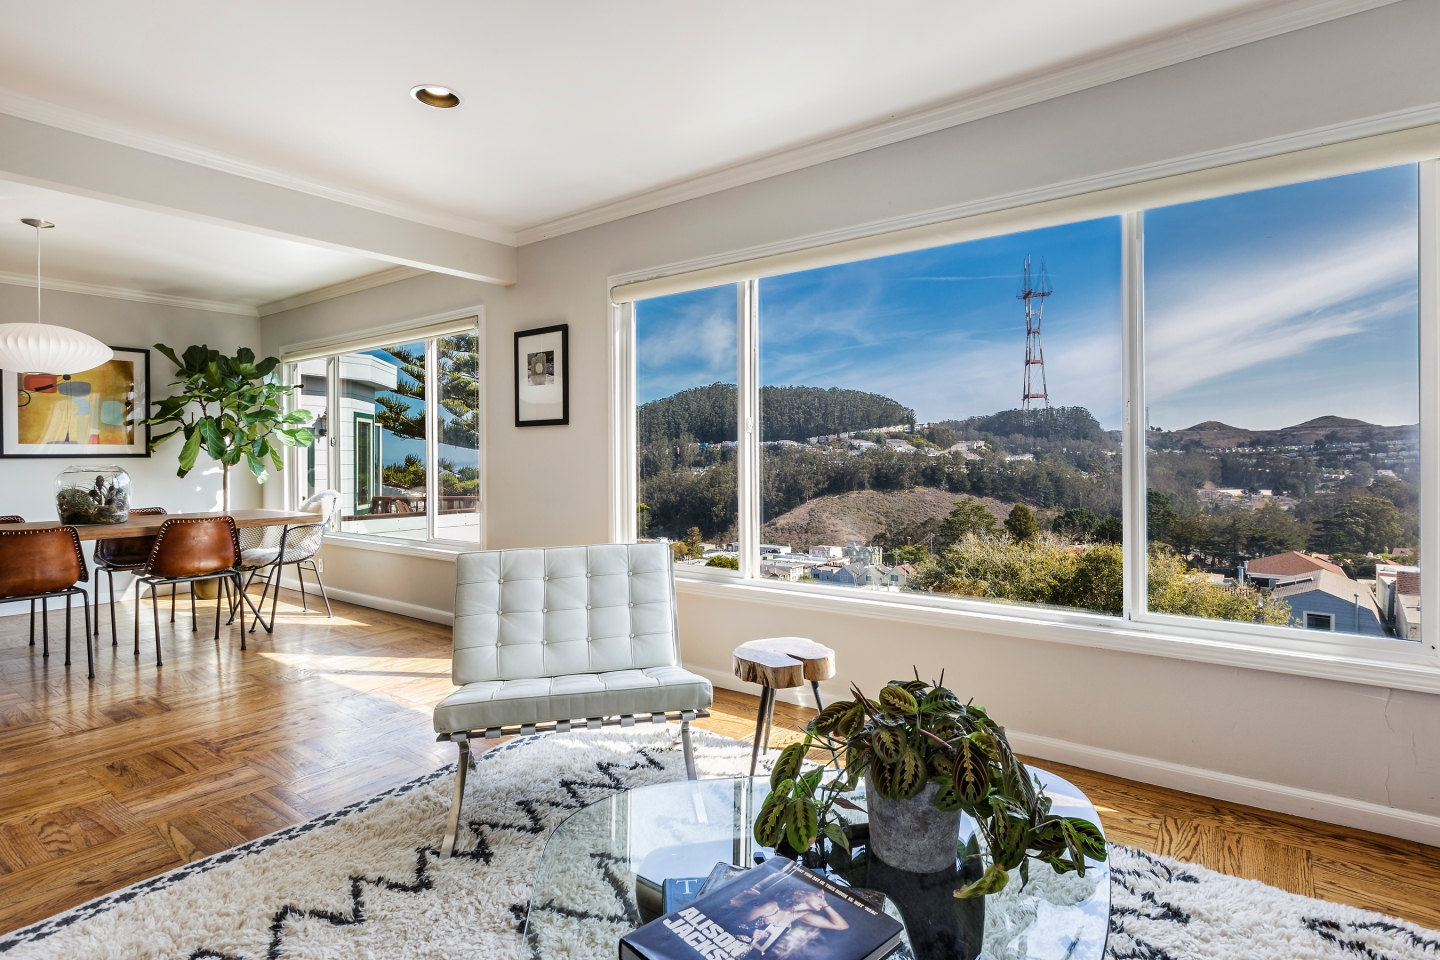 For Sale | 1972 11th Ave, Golden Gate Heights, SanFrancisco